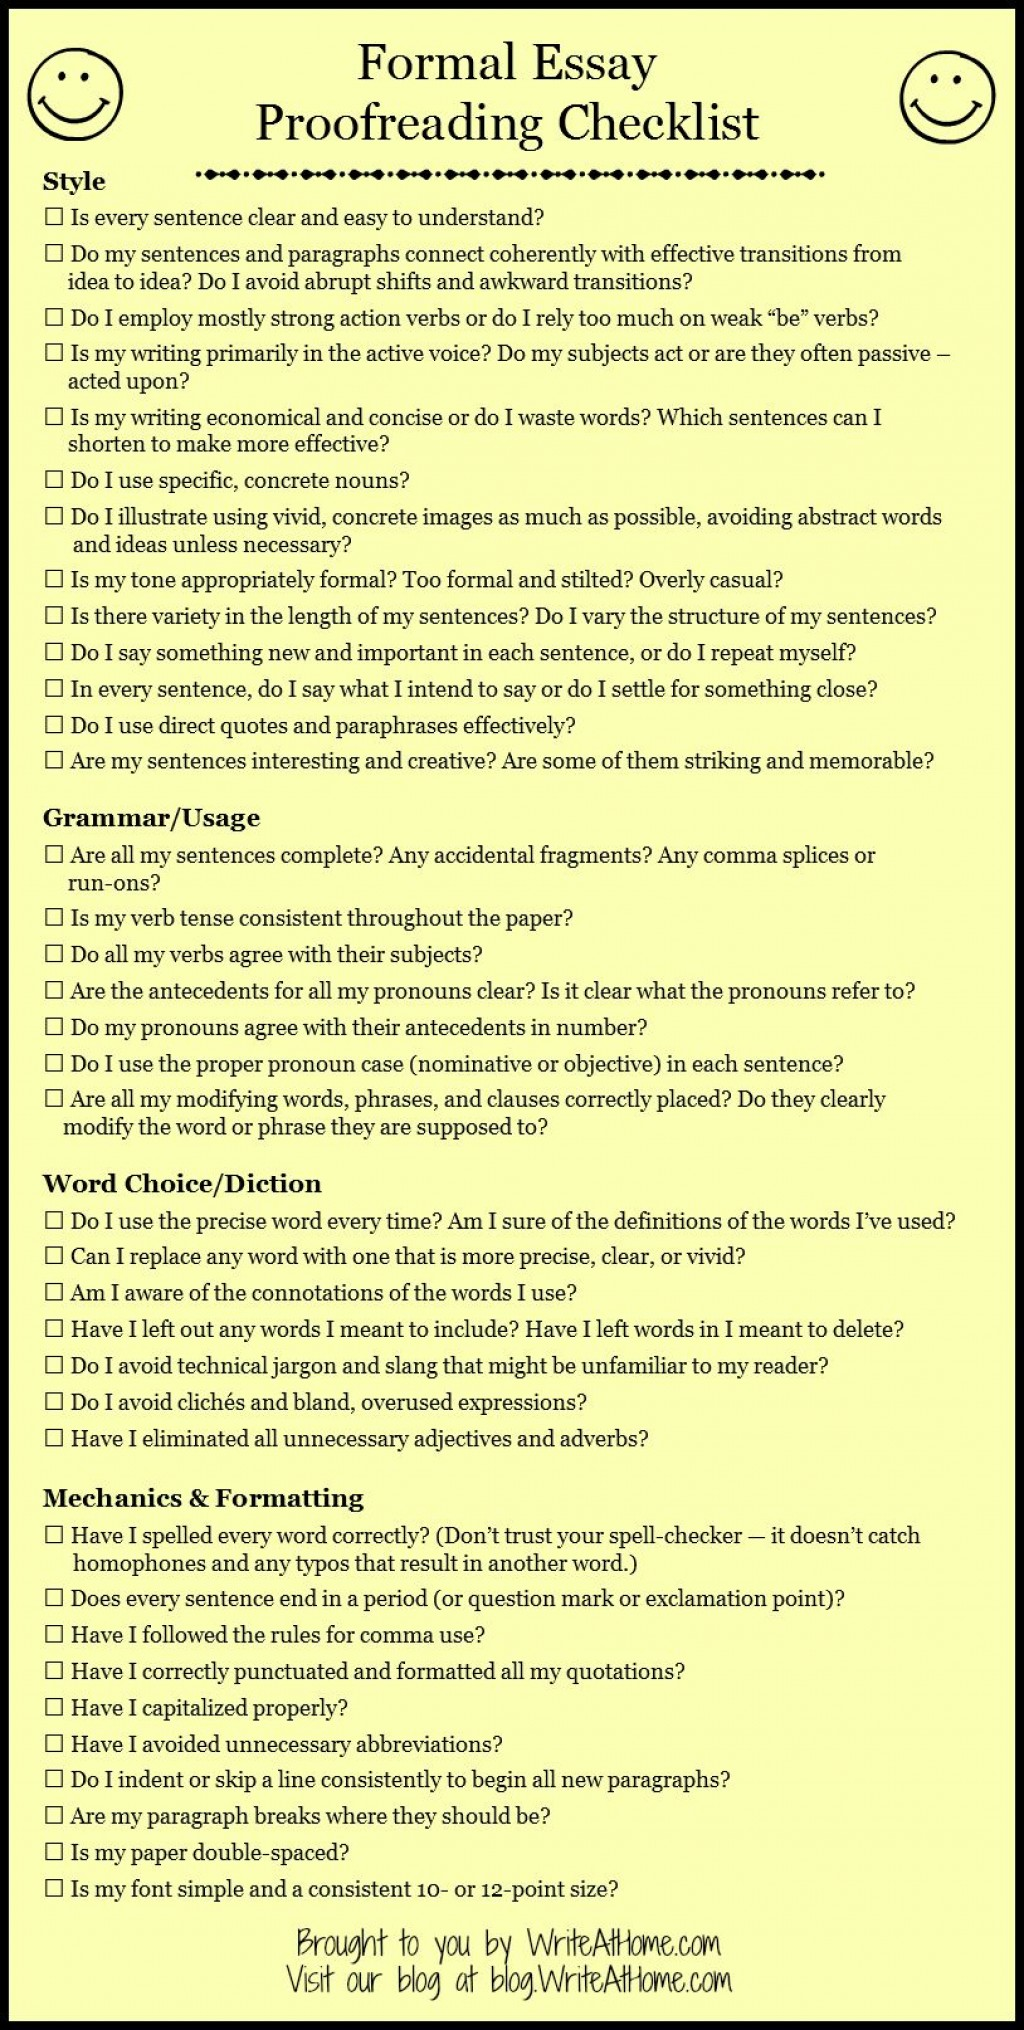 017 Essay Example Sensational Proofreader Online Persuasive Proofreading Checklist College Service Large